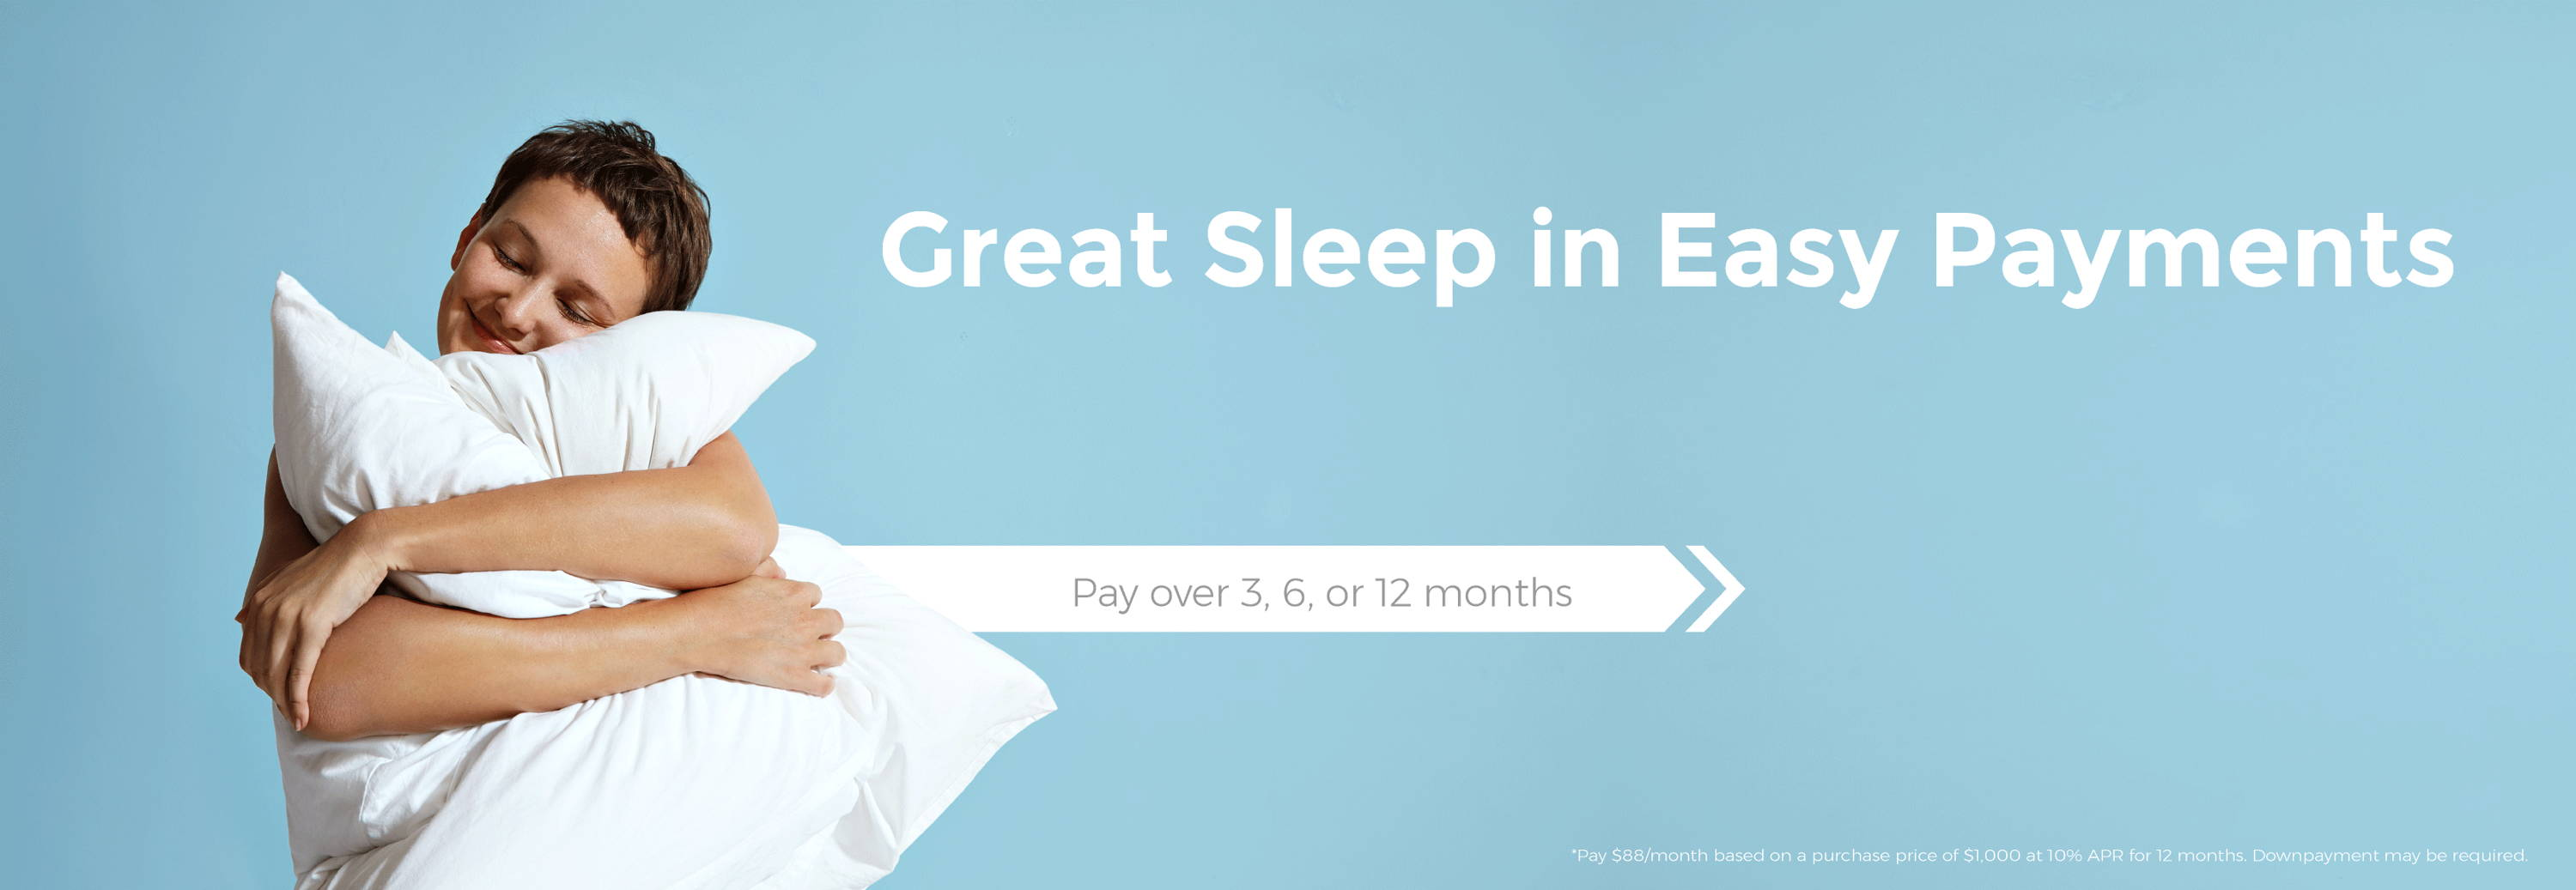 great sleep in easy payments. pay over 3, 6, 12 months